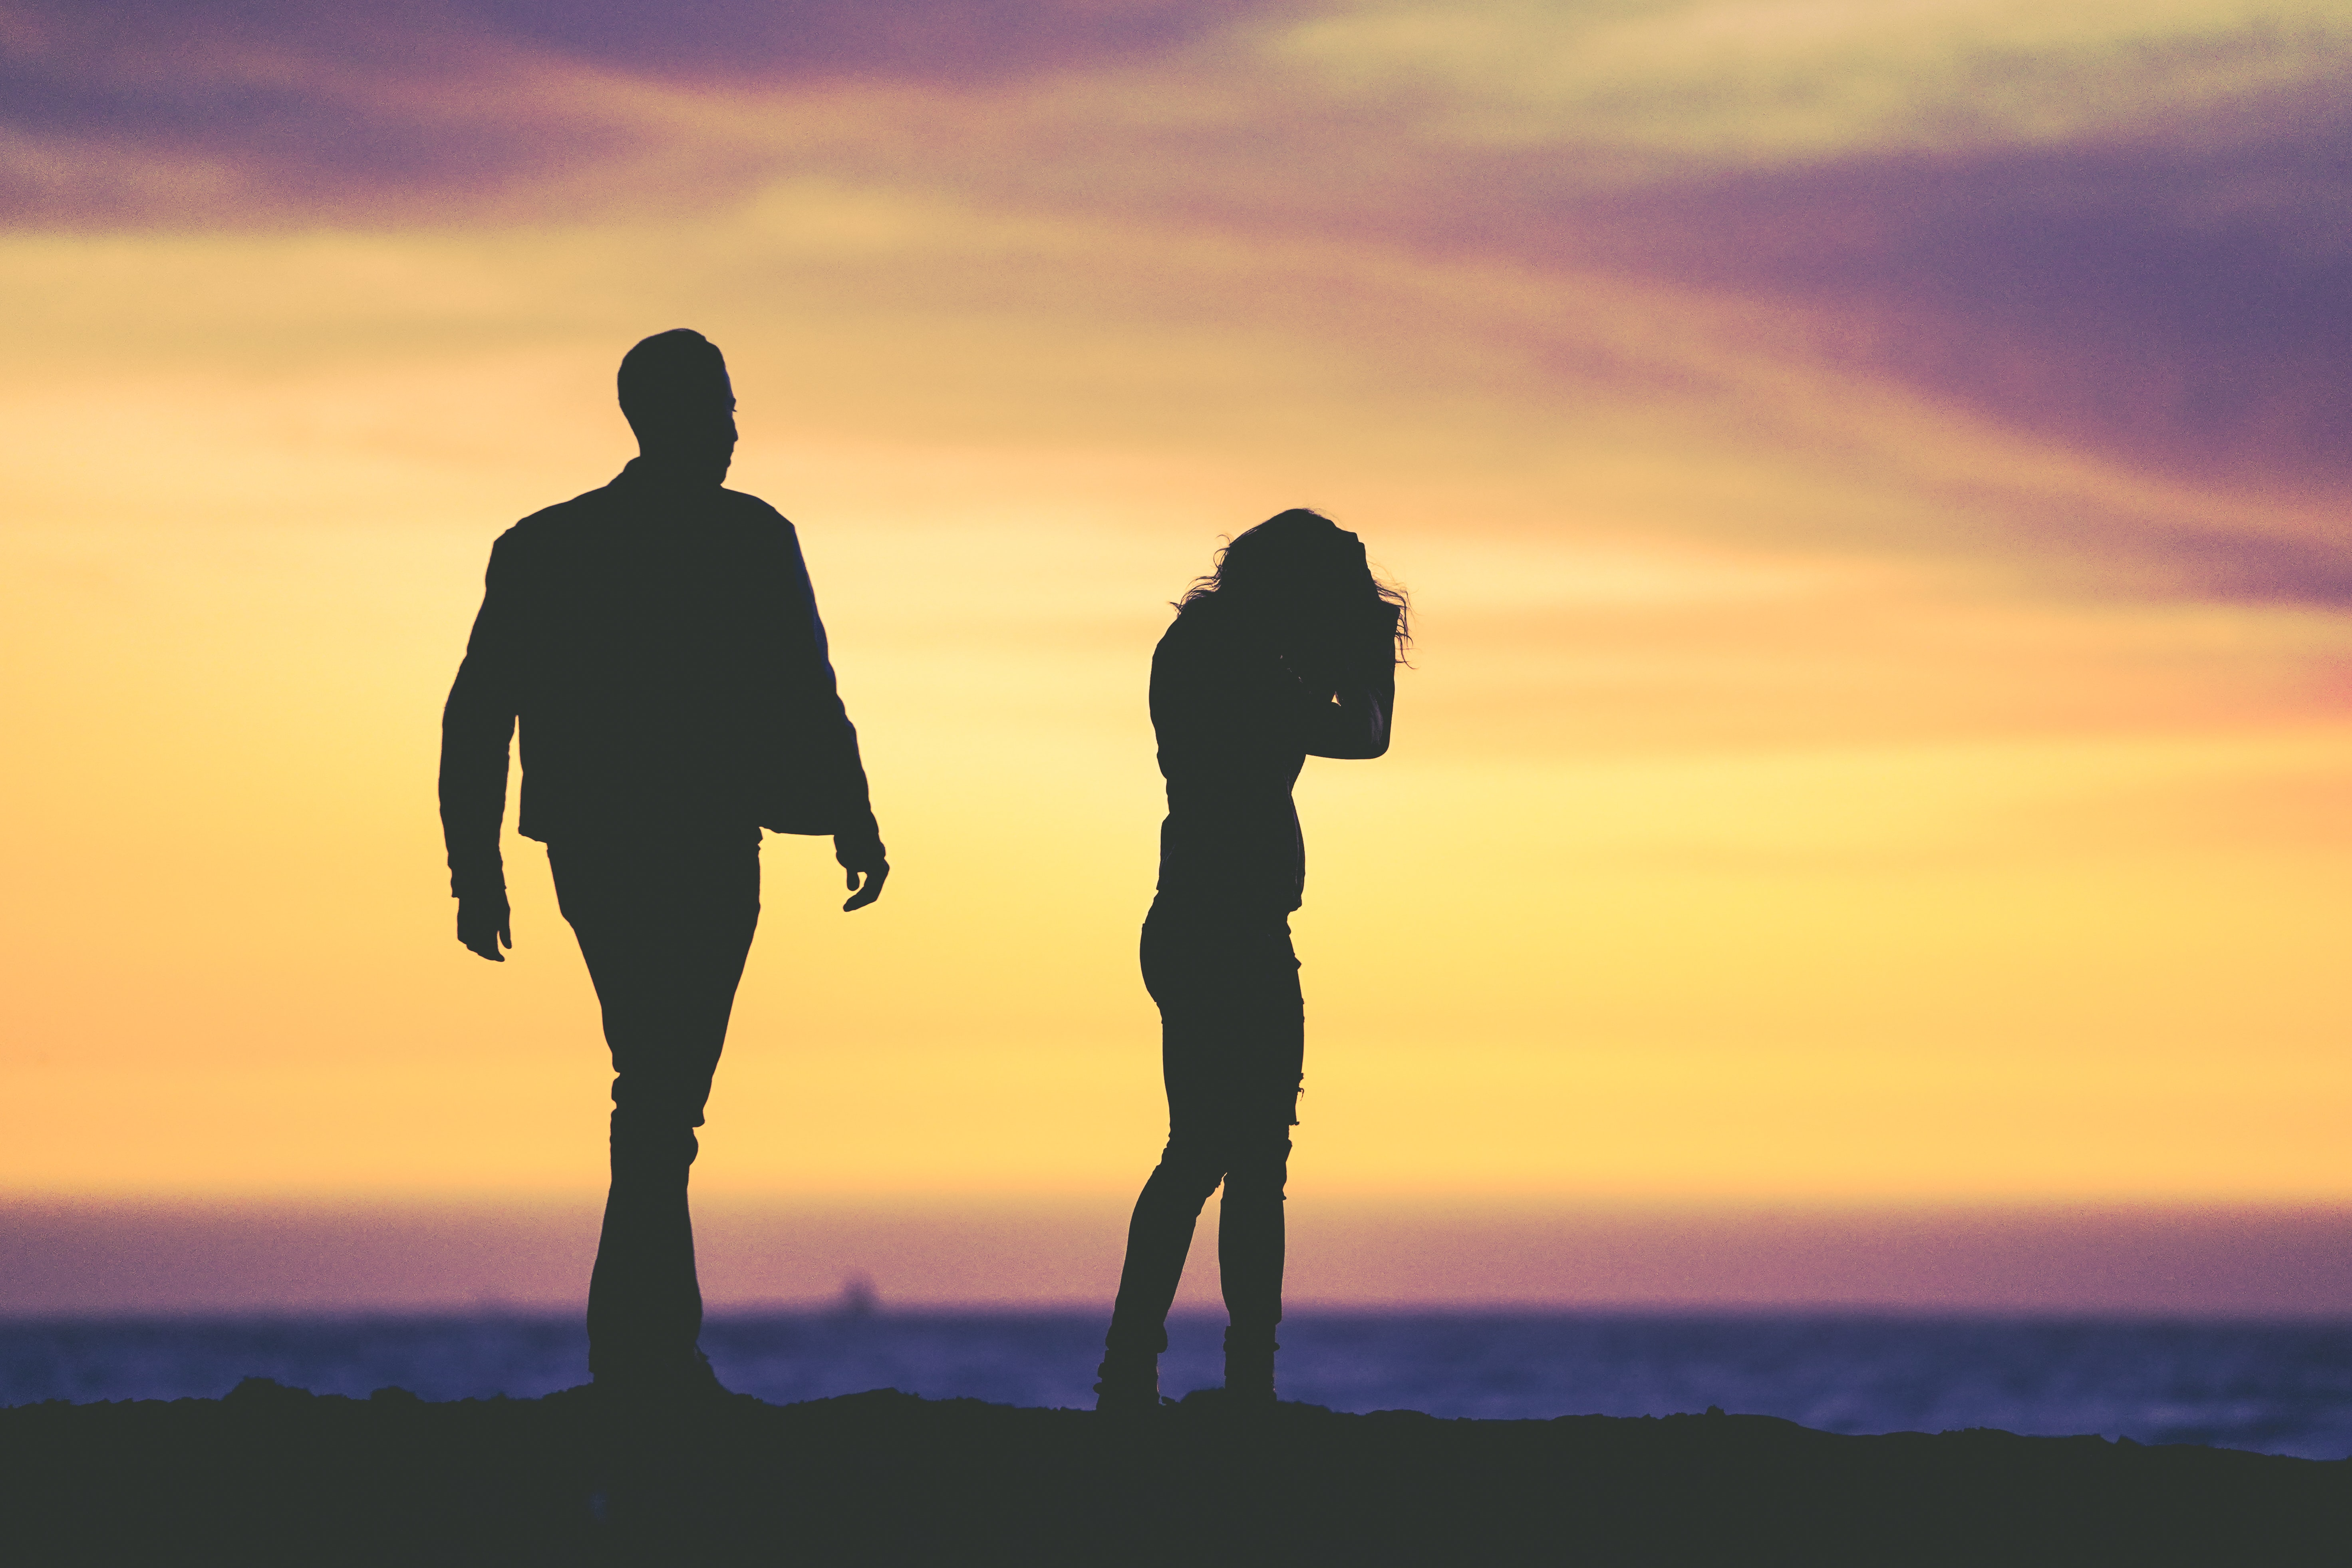 How can I stop worrying about my wife's previous partners?